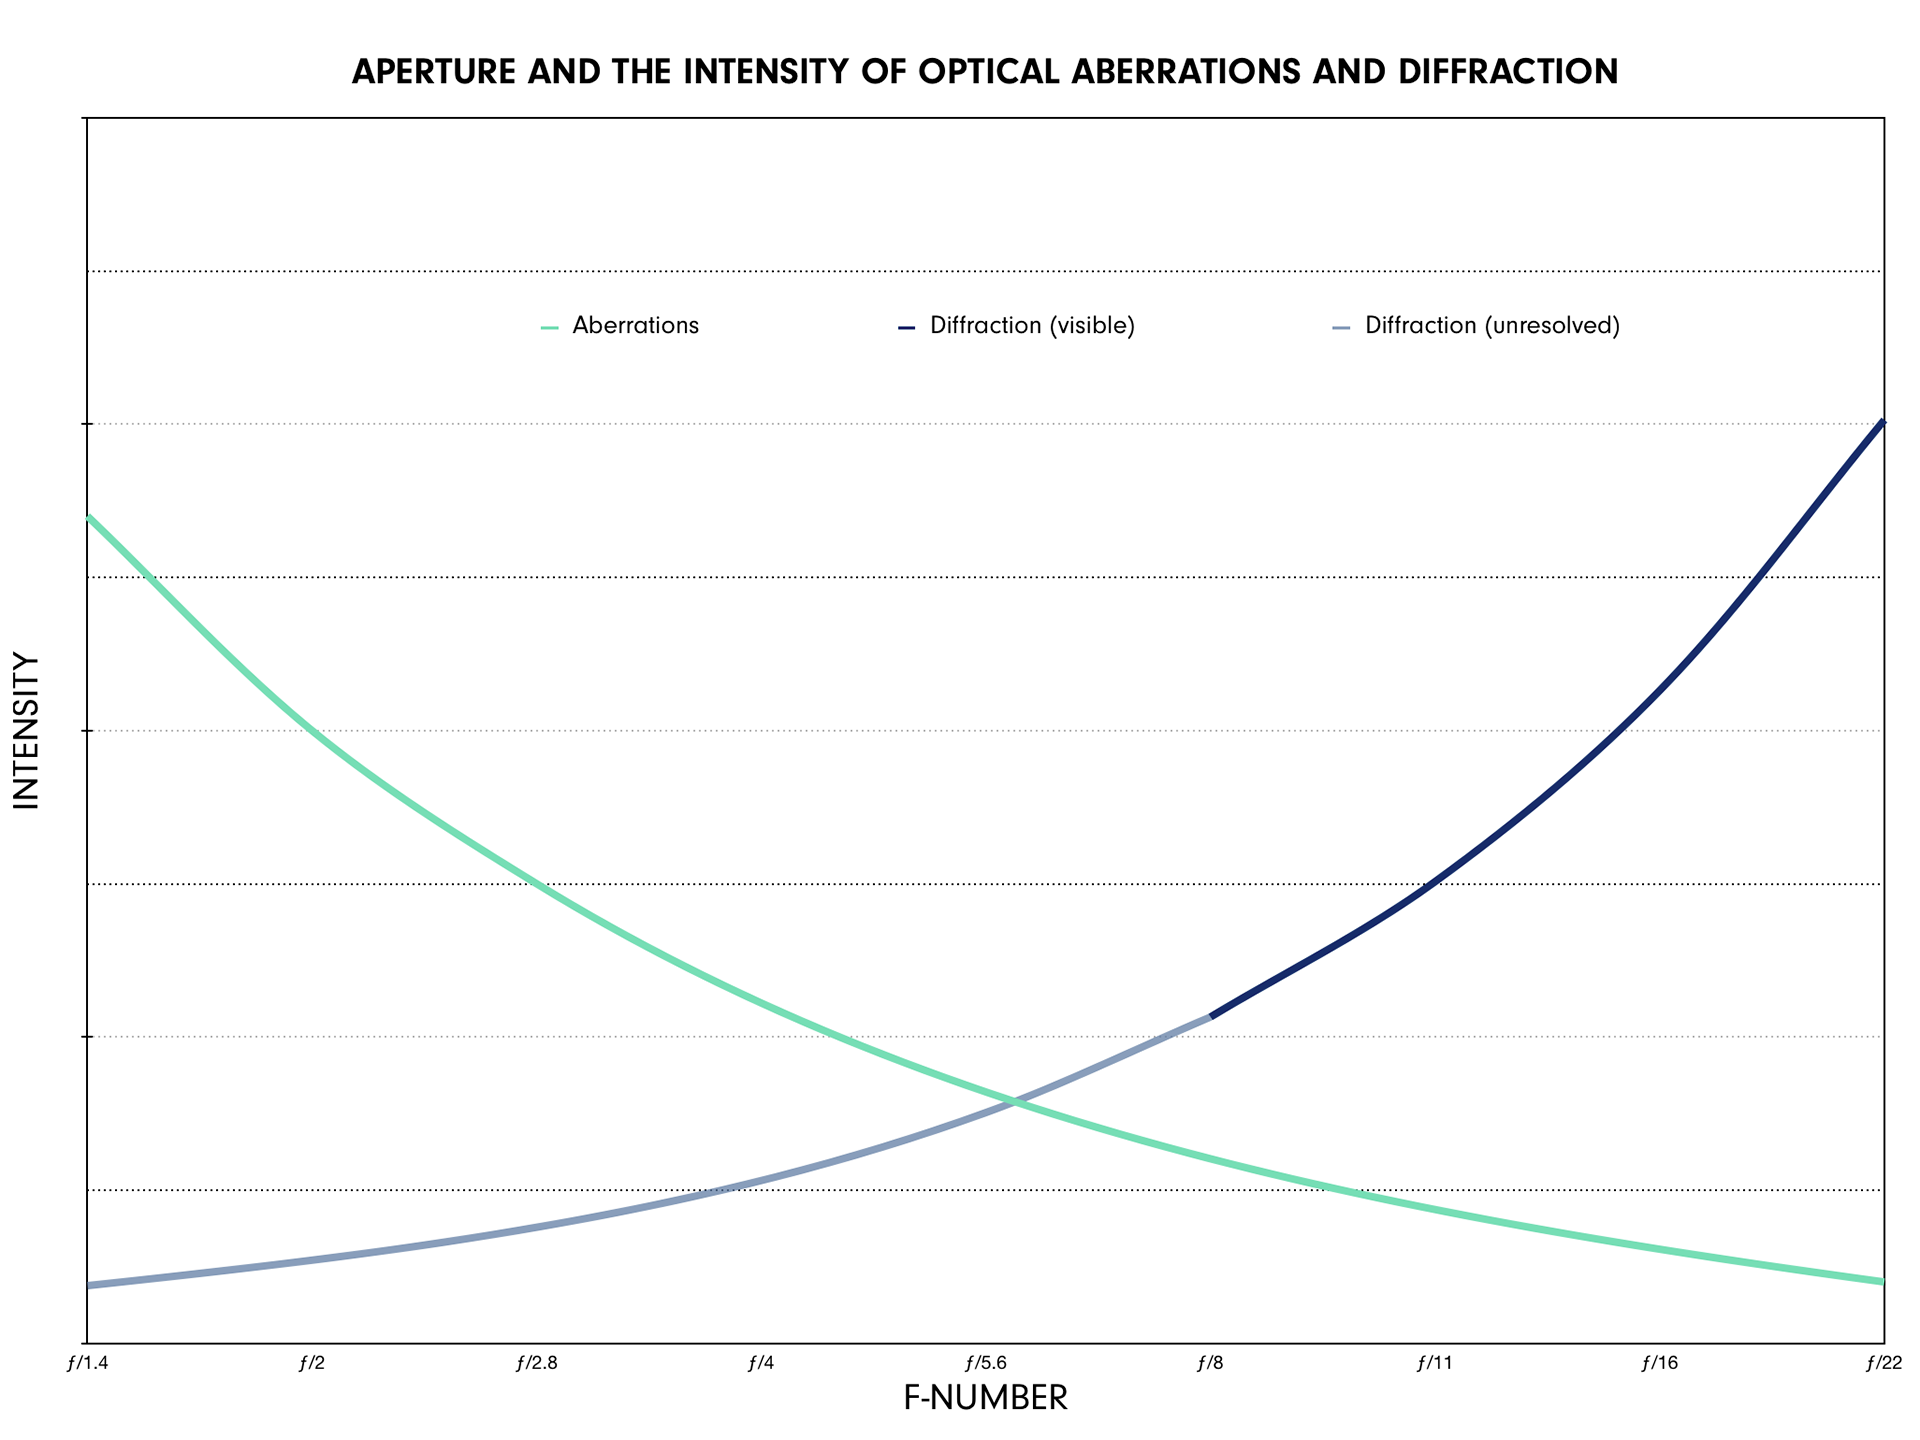 graph of aperture settings and its effect on optical aberrations and diffraction